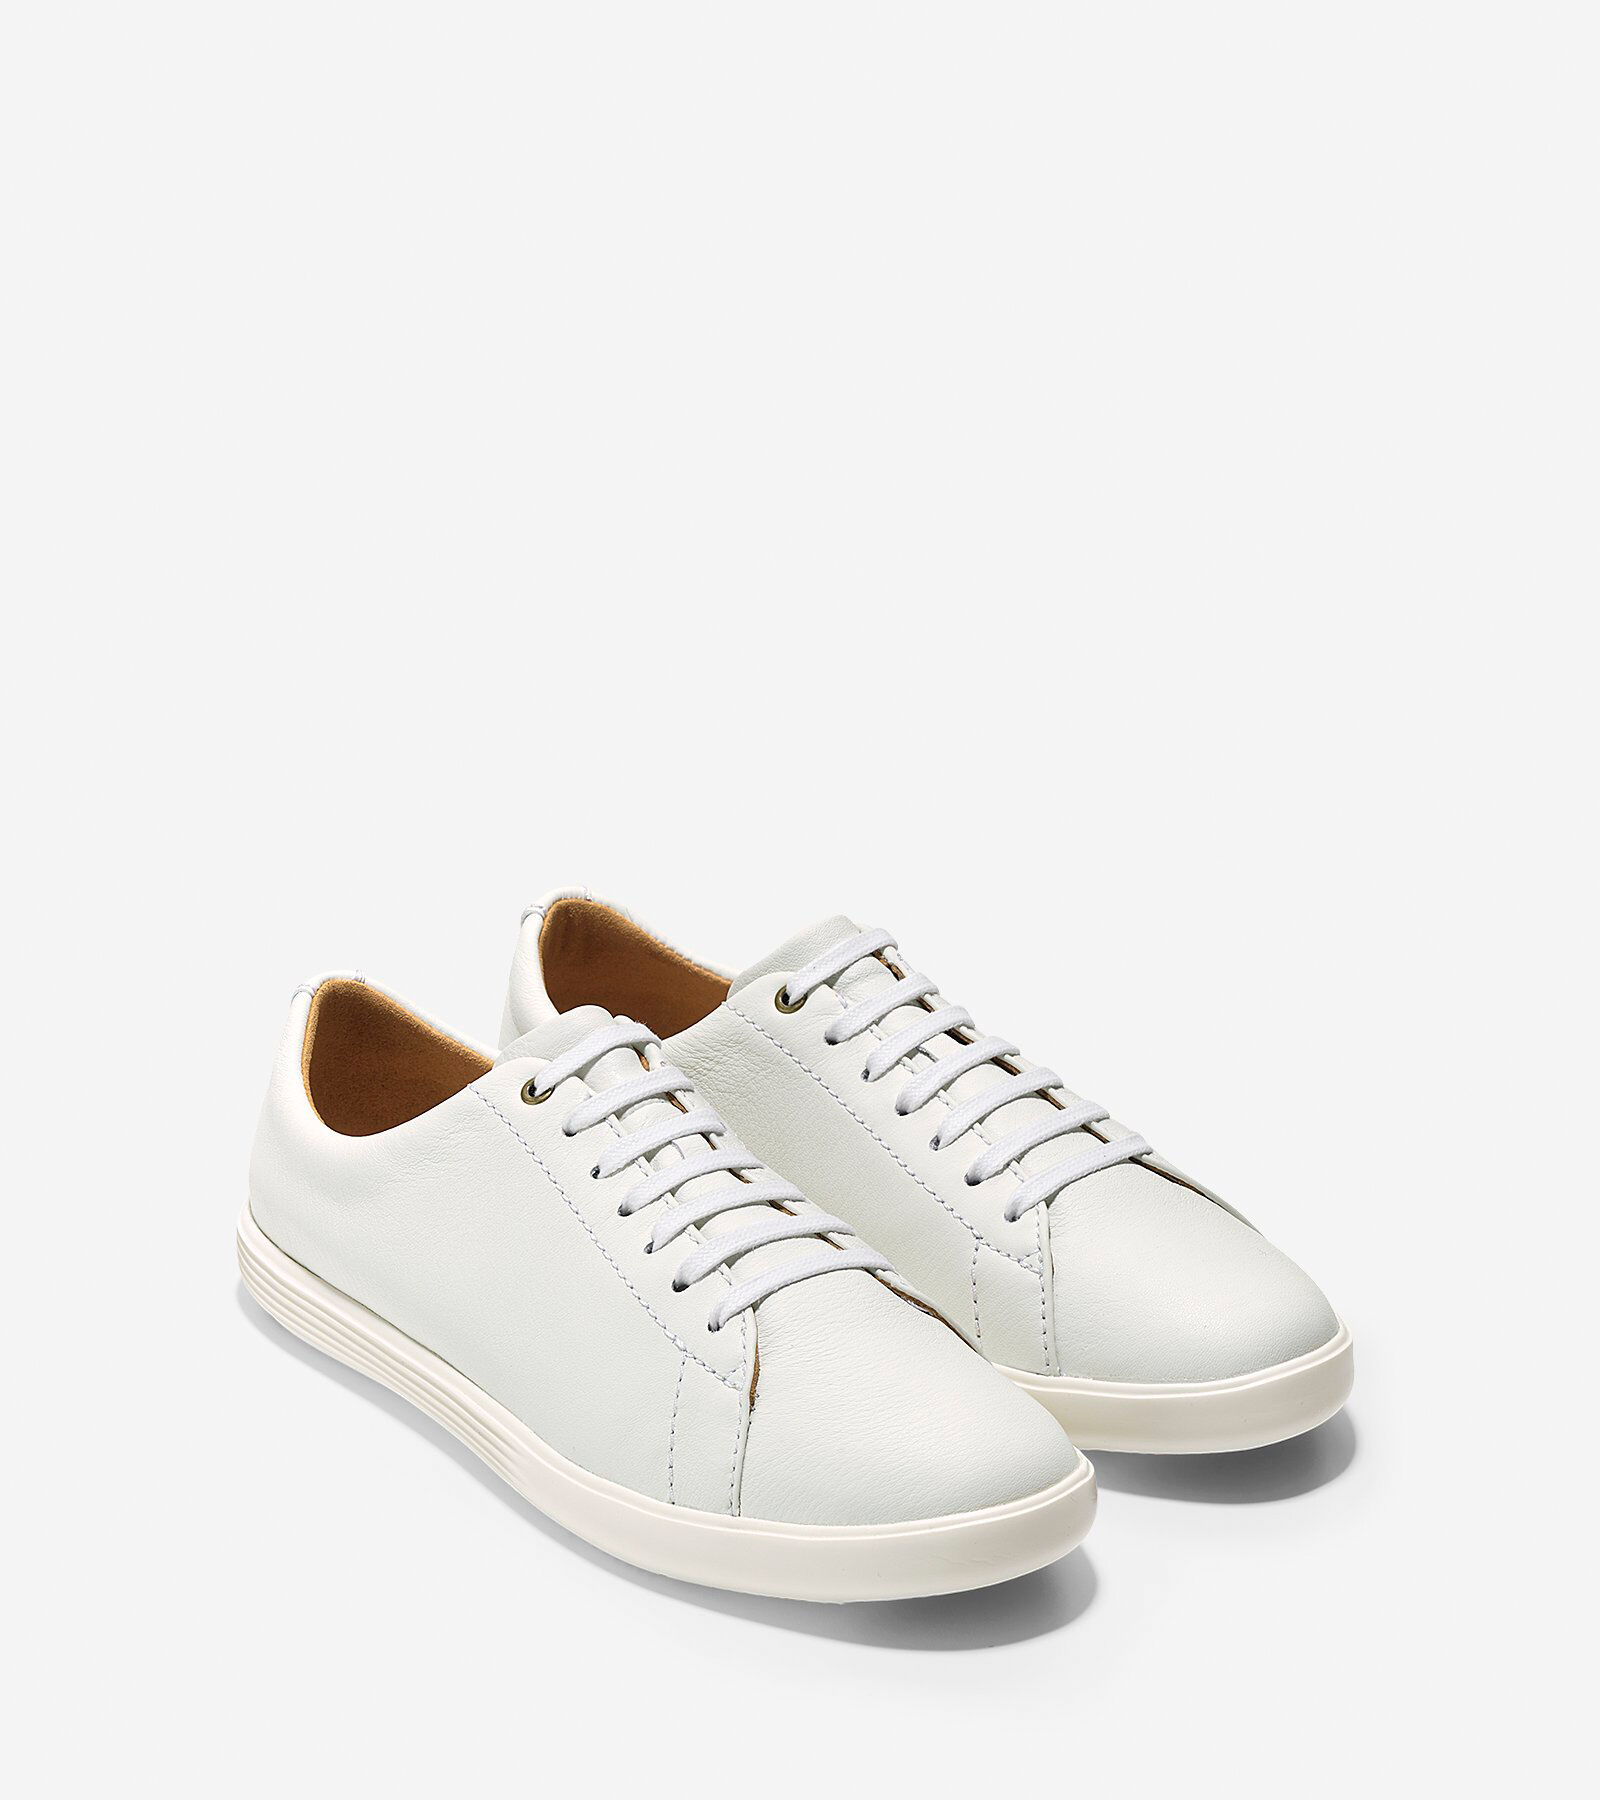 ... Women's Grand Crosscourt Sneaker; Women's Grand Crosscourt Sneaker. # colehaan